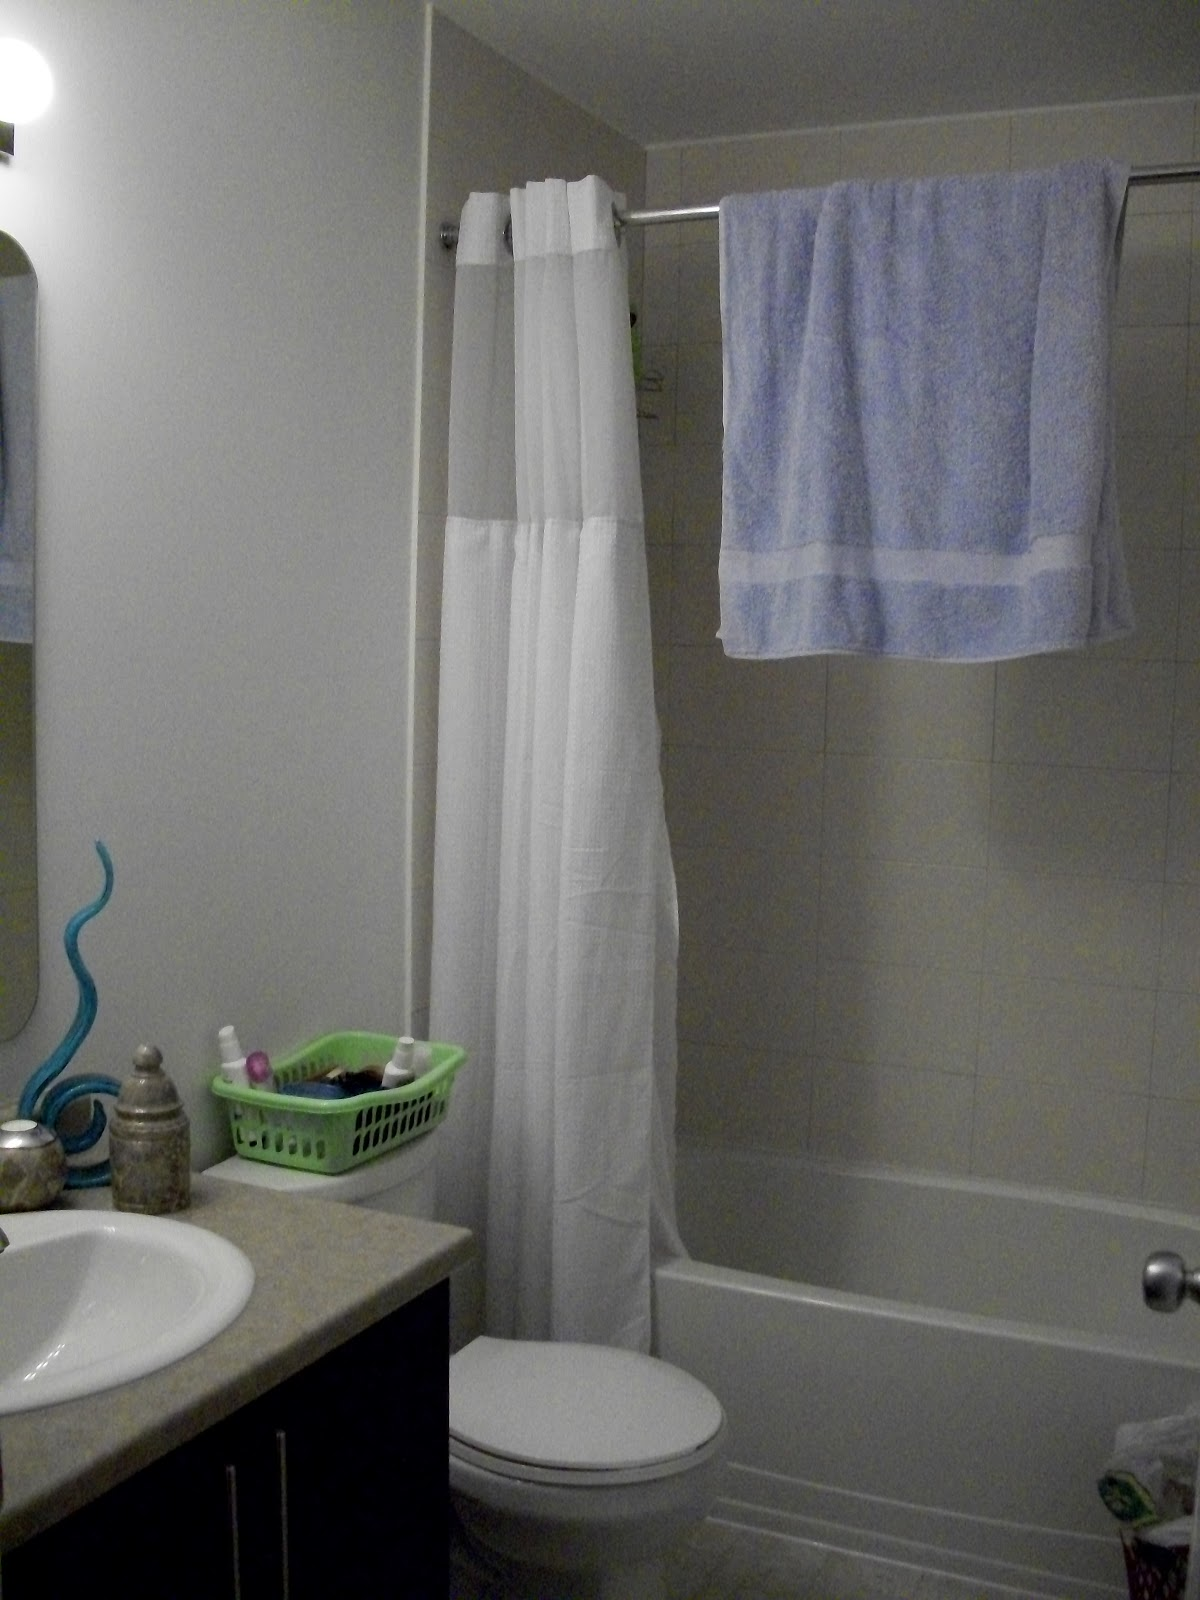 Sprucing Up The BathroomLive From B5  October 2012. New Bathroom Fitted Price. Home Design Ideas